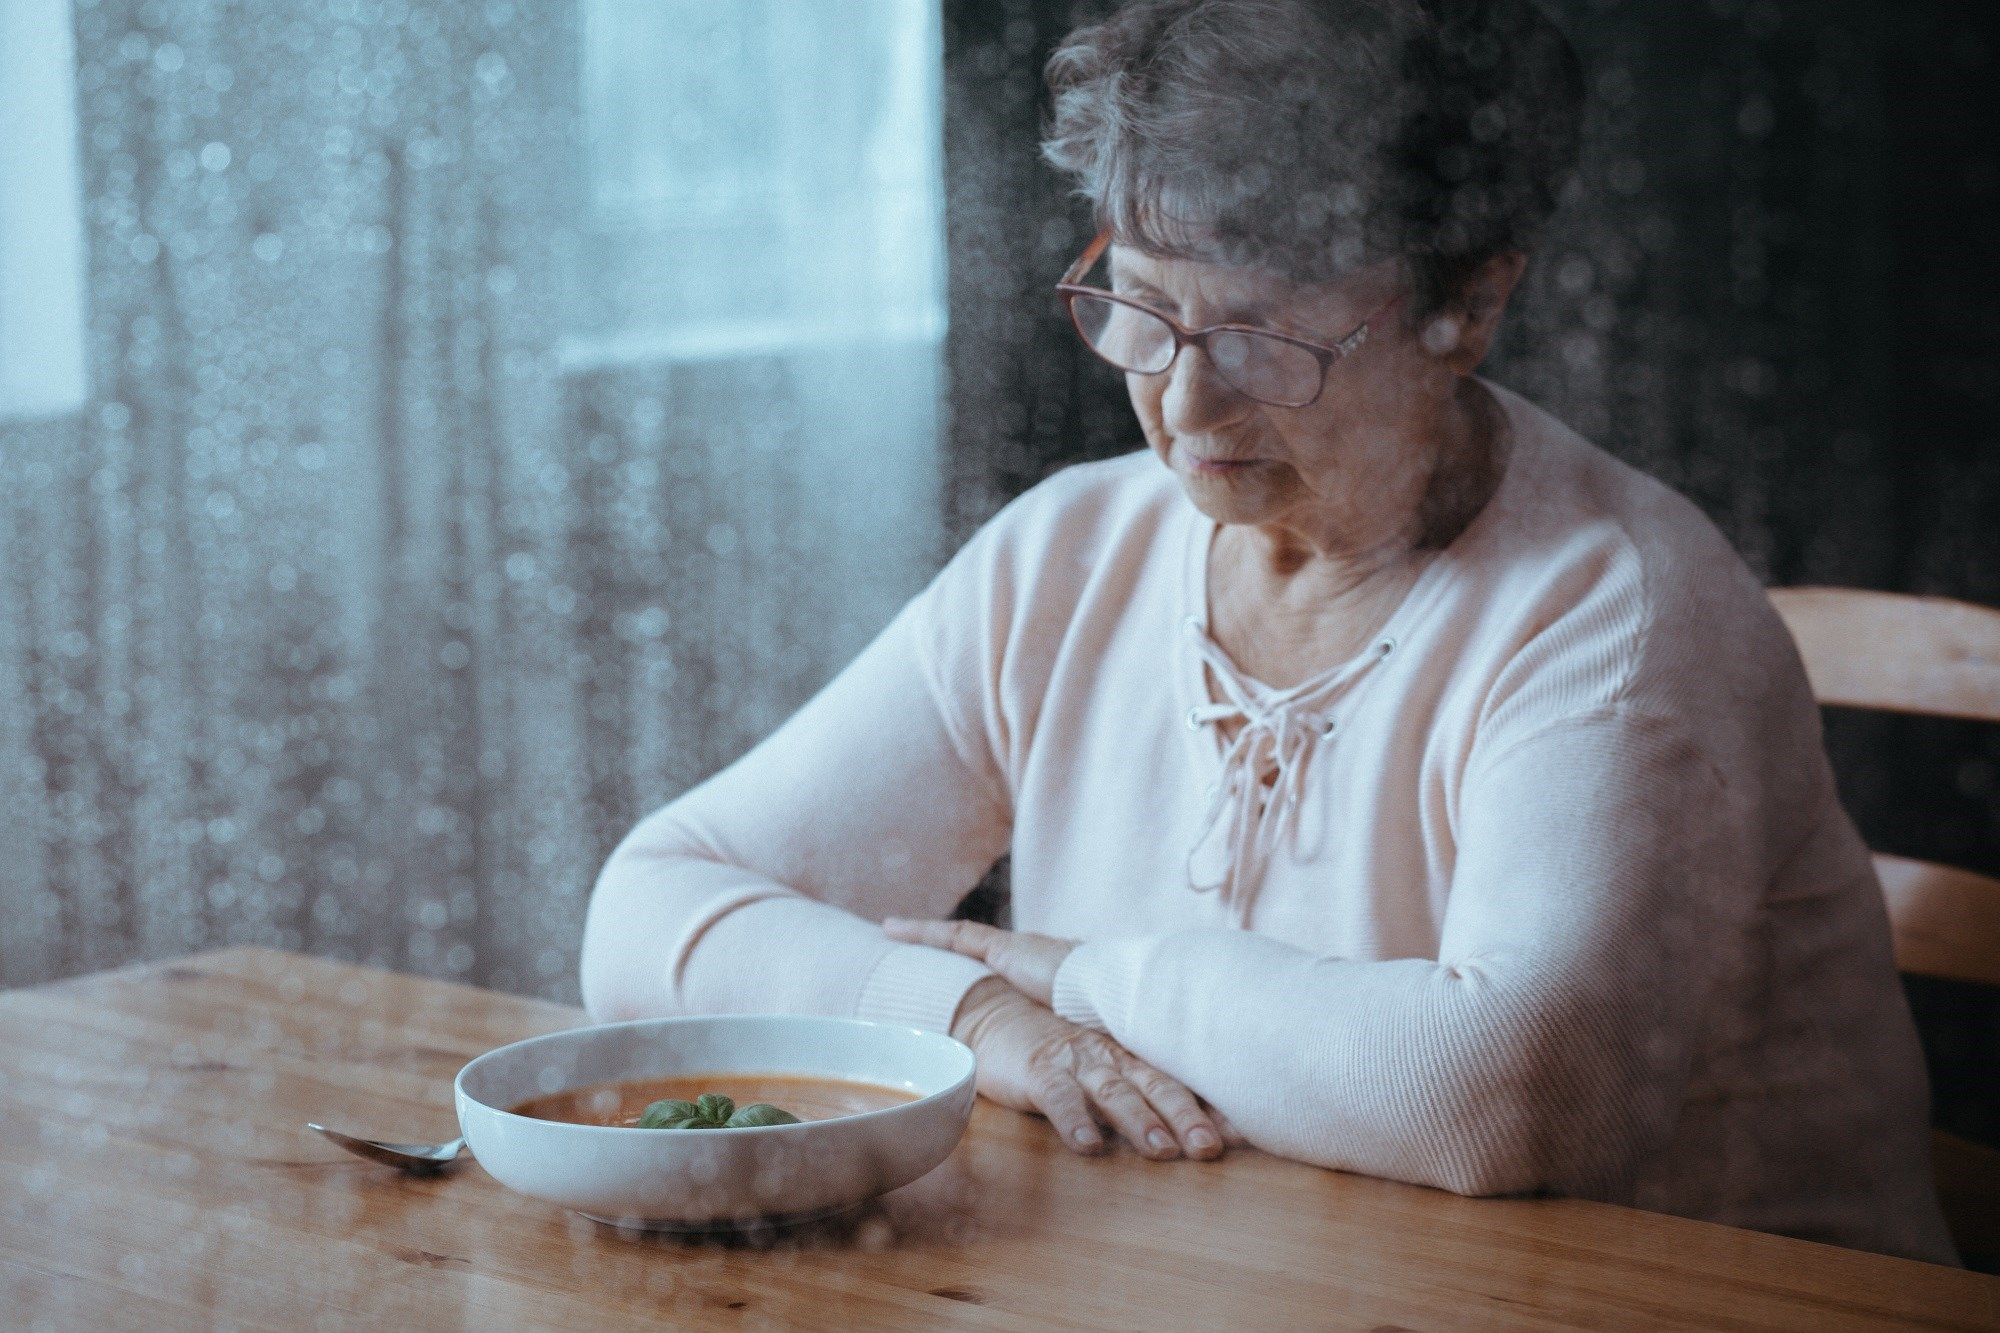 Dysphagia Due to MS Associated With Reduced Swallowing-Related QoL